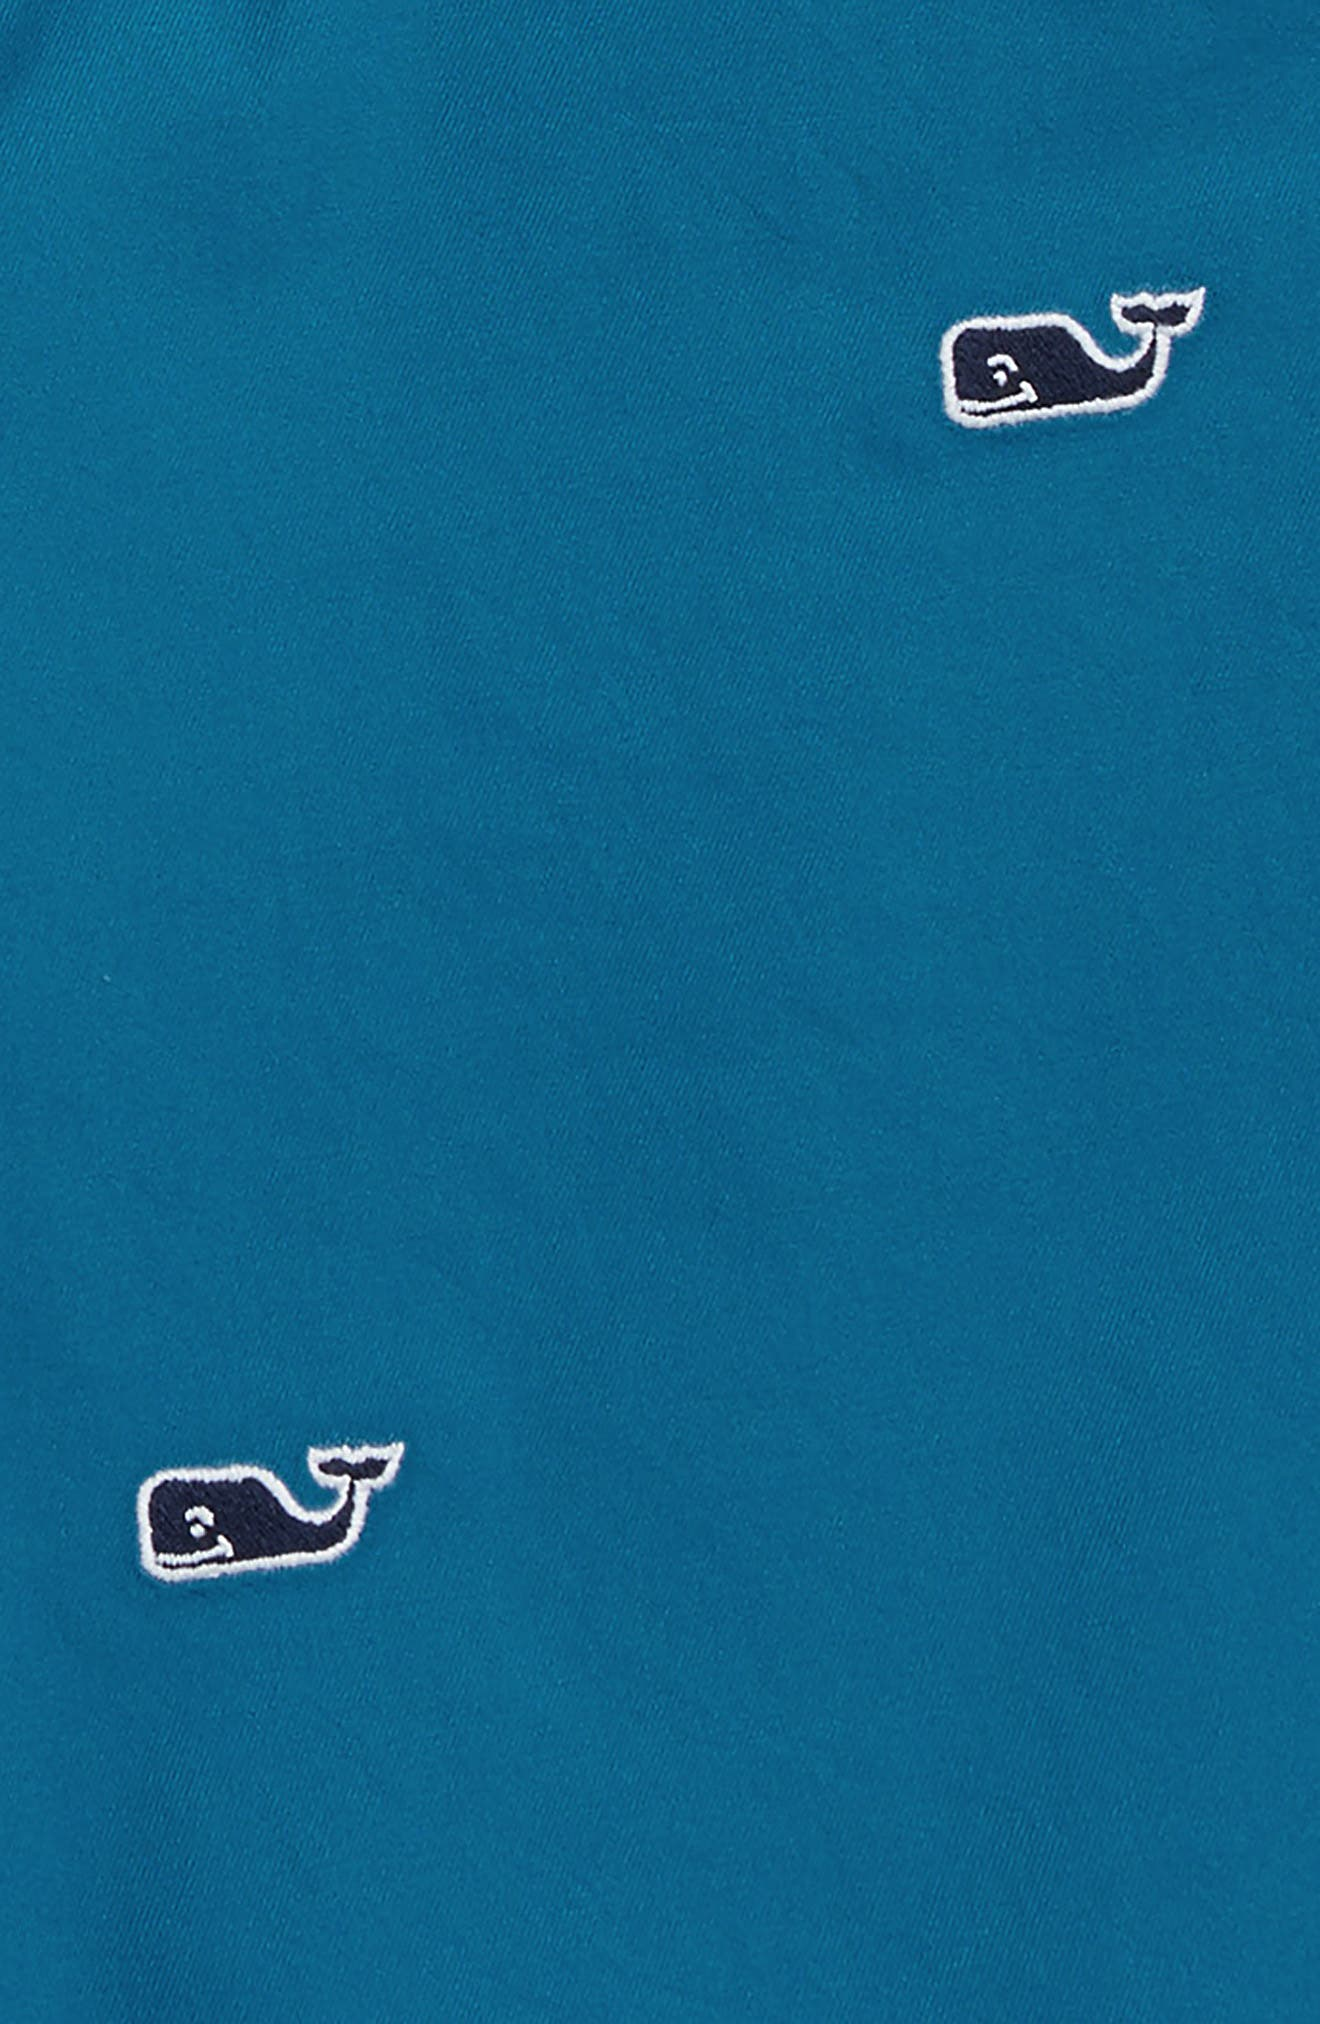 Breaker Whale Embroidered Shorts,                             Alternate thumbnail 2, color,                             401